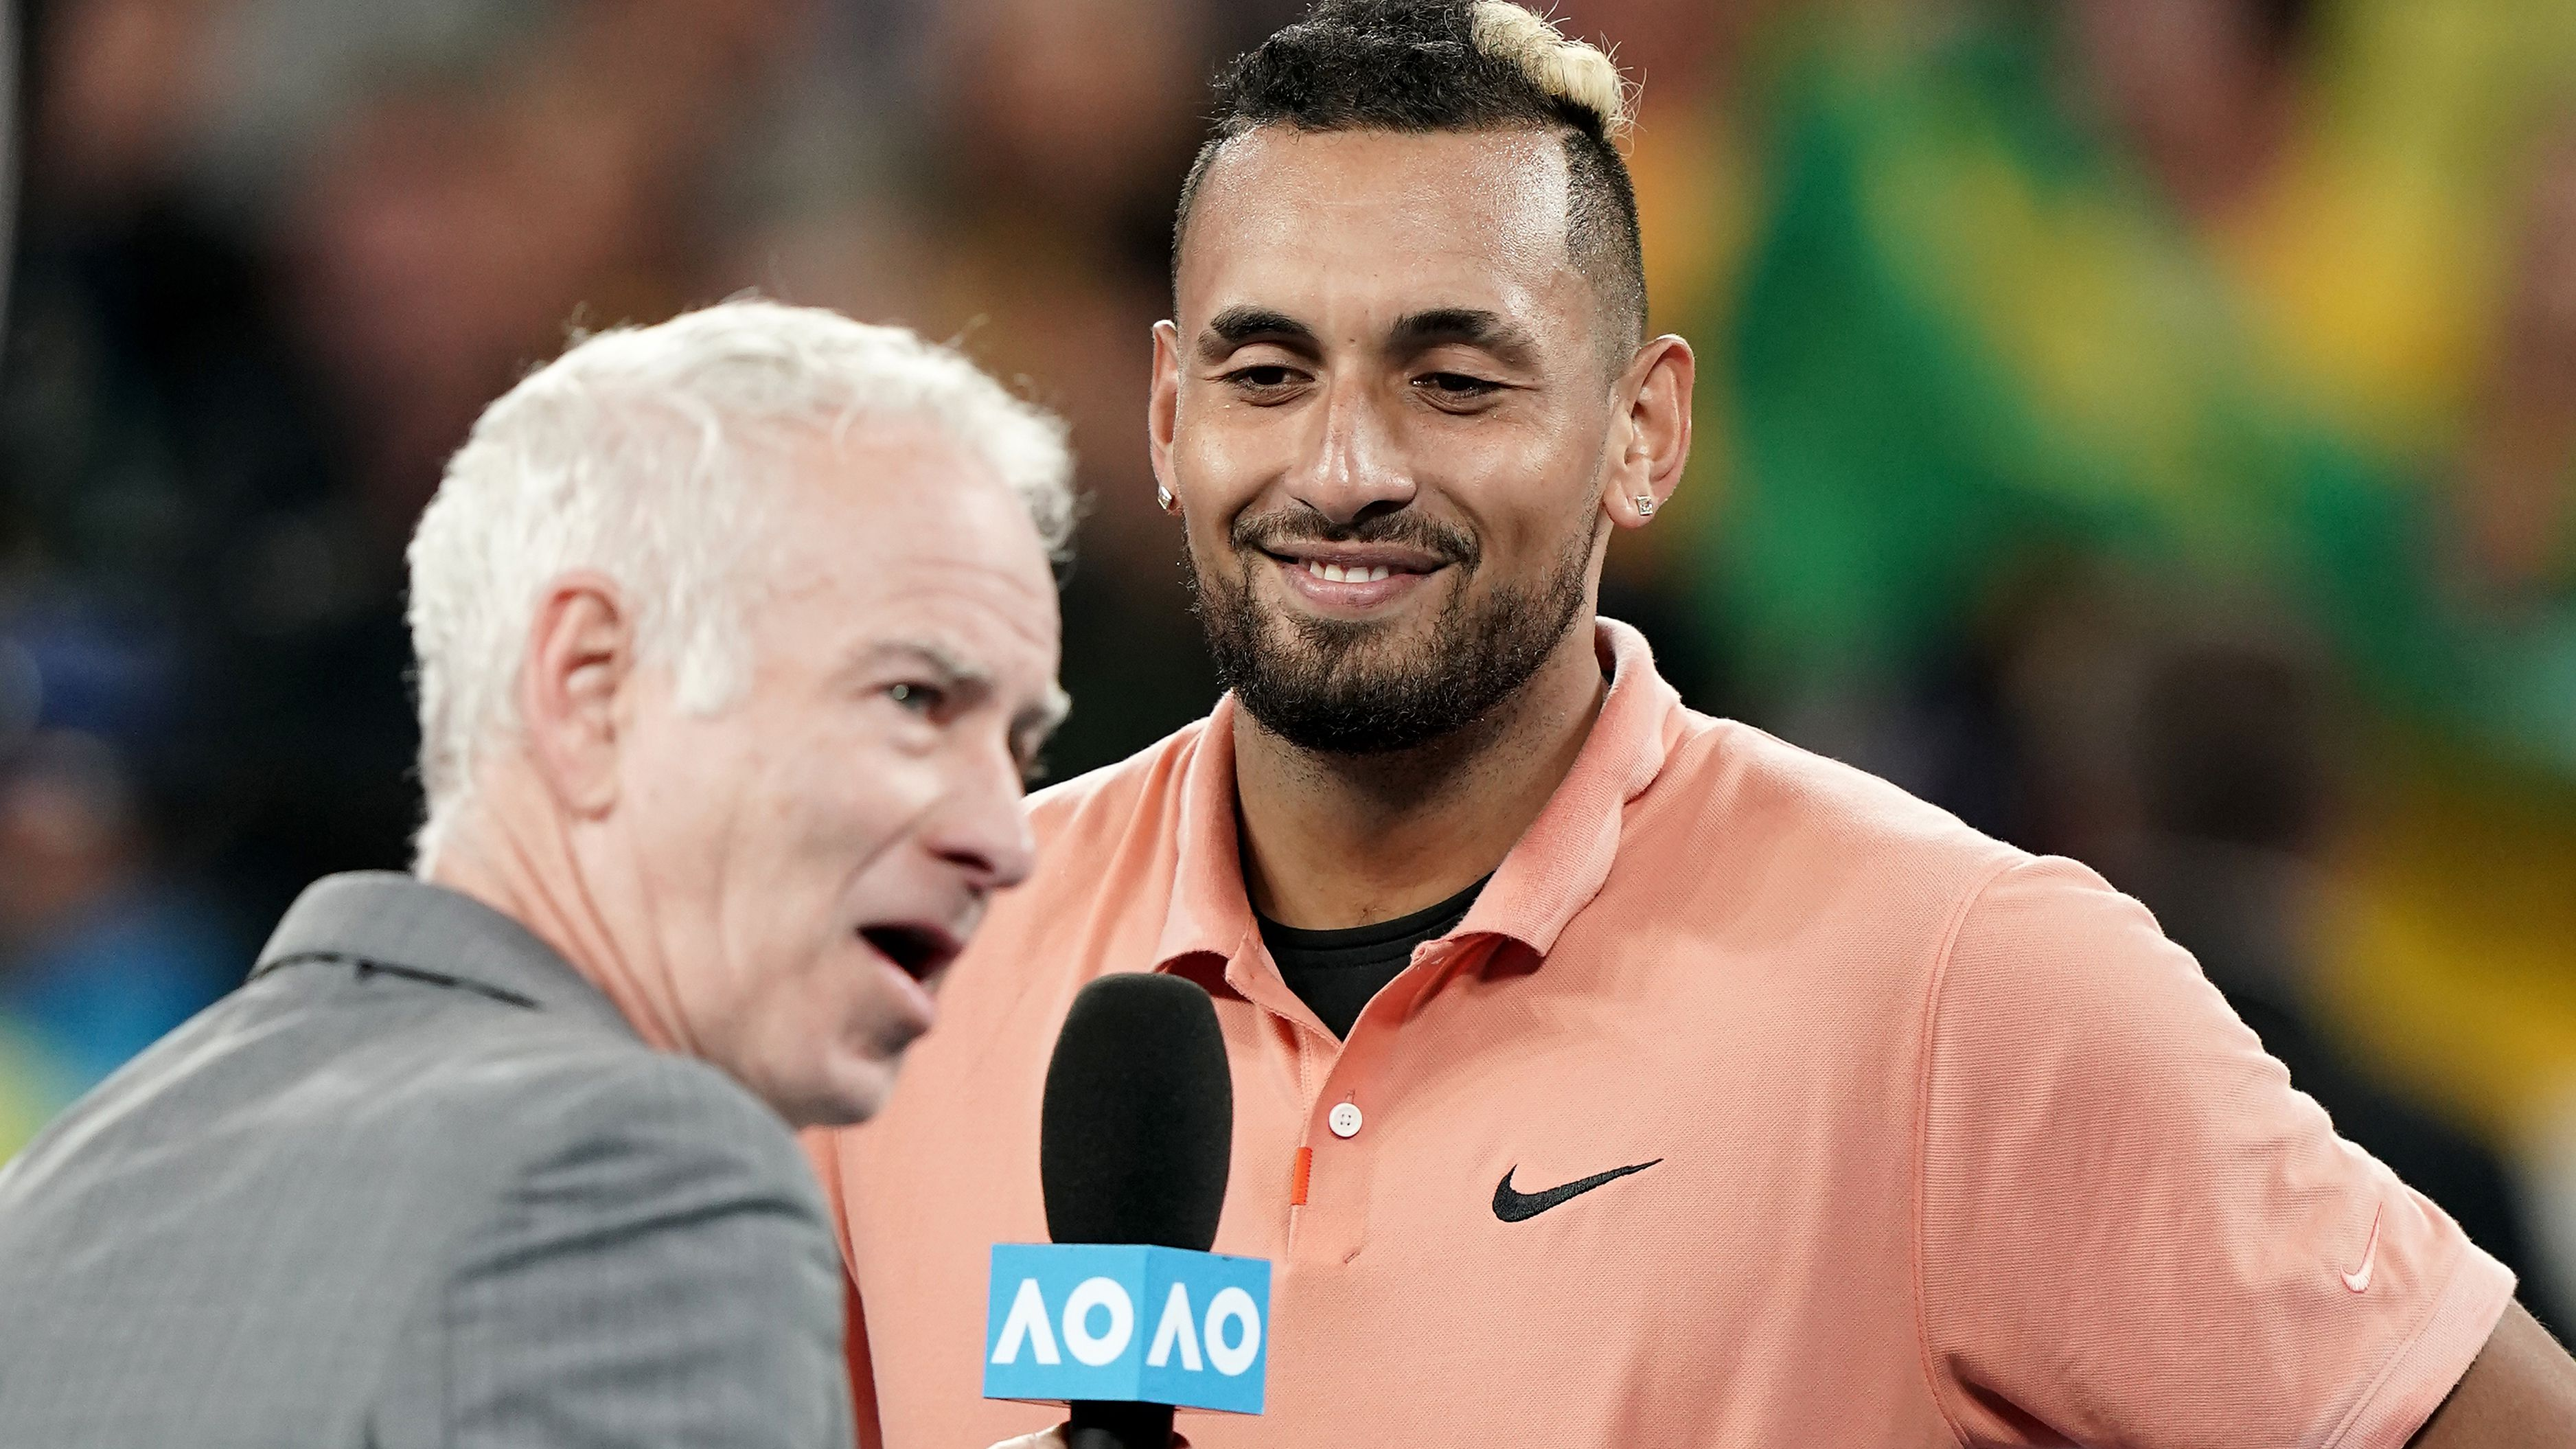 Nick Kyrgios shrugs off injury fears, pays tribute to Alex de Minaur after win